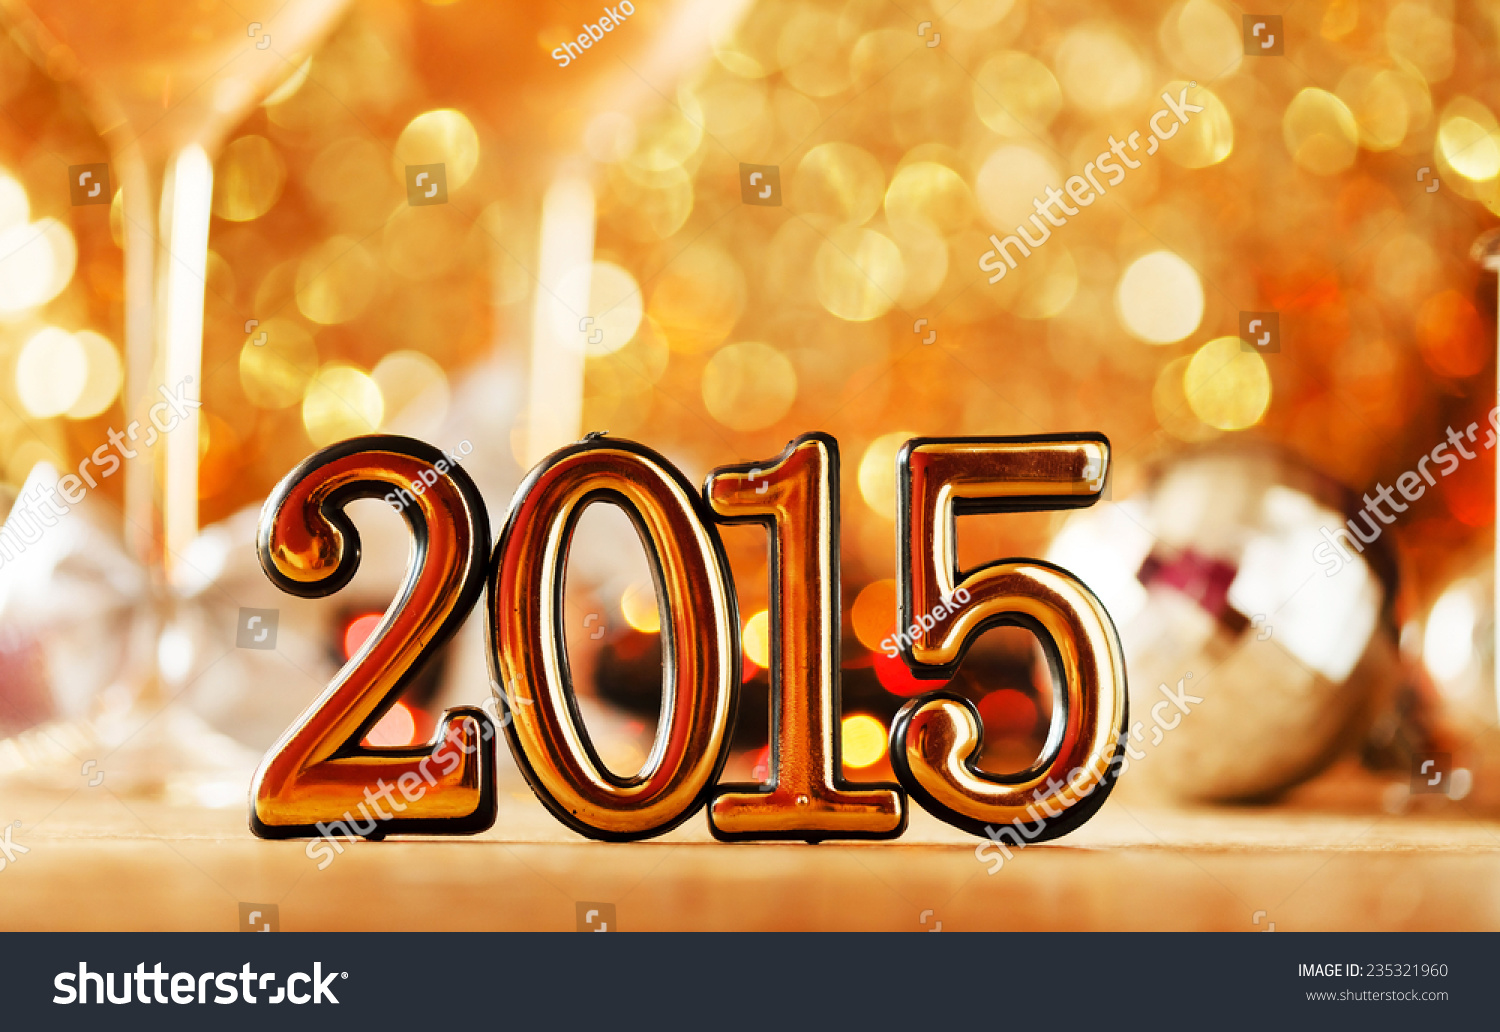 2015 Happy New Year Greeting Card Stock Photo Edit Now Shutterstock